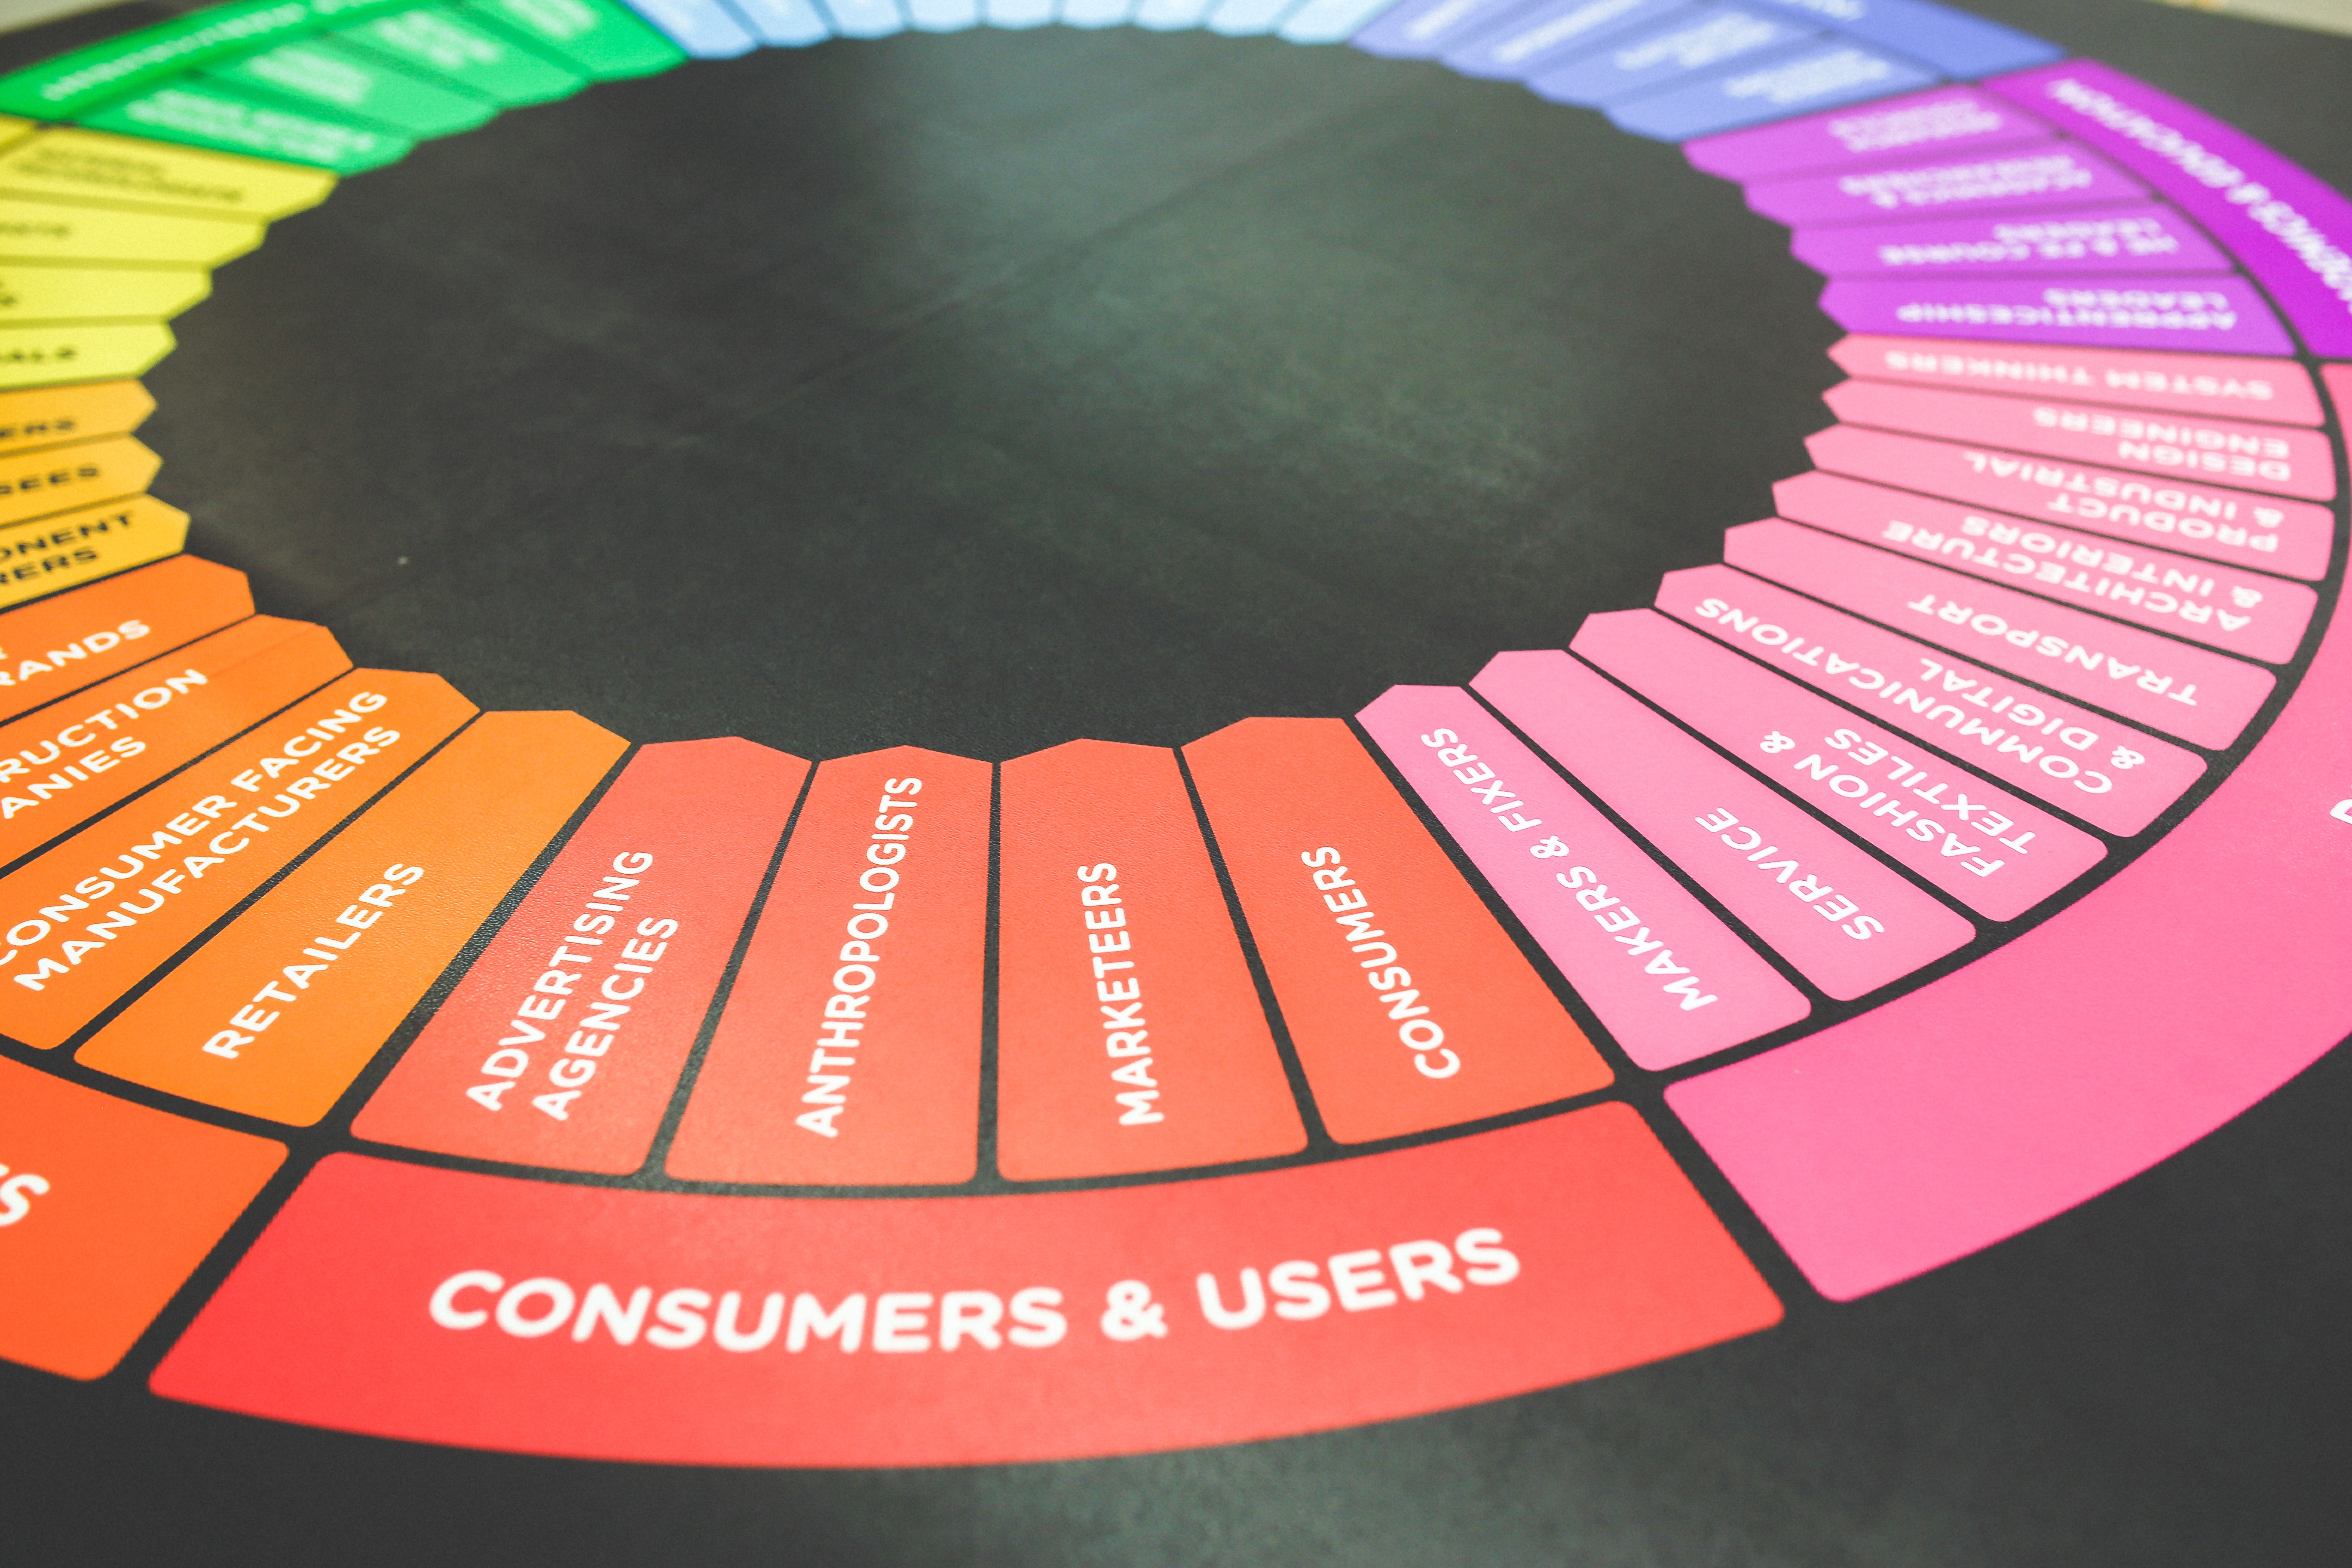 17 UX Trends That Will Help You Achieve Marketing Success